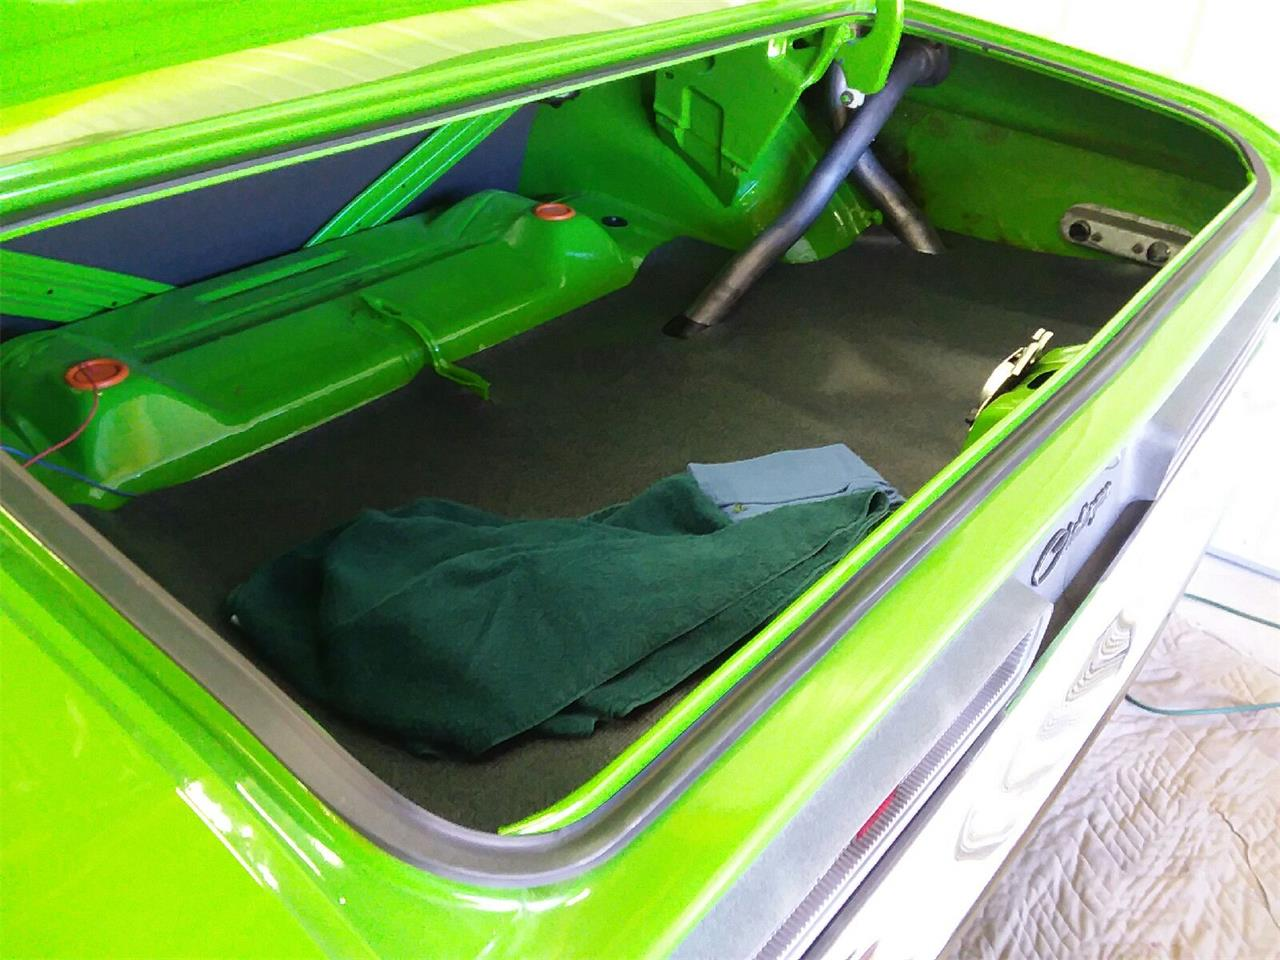 1971 Dodge Challenger R/T for sale in Waterford, PA – photo 19